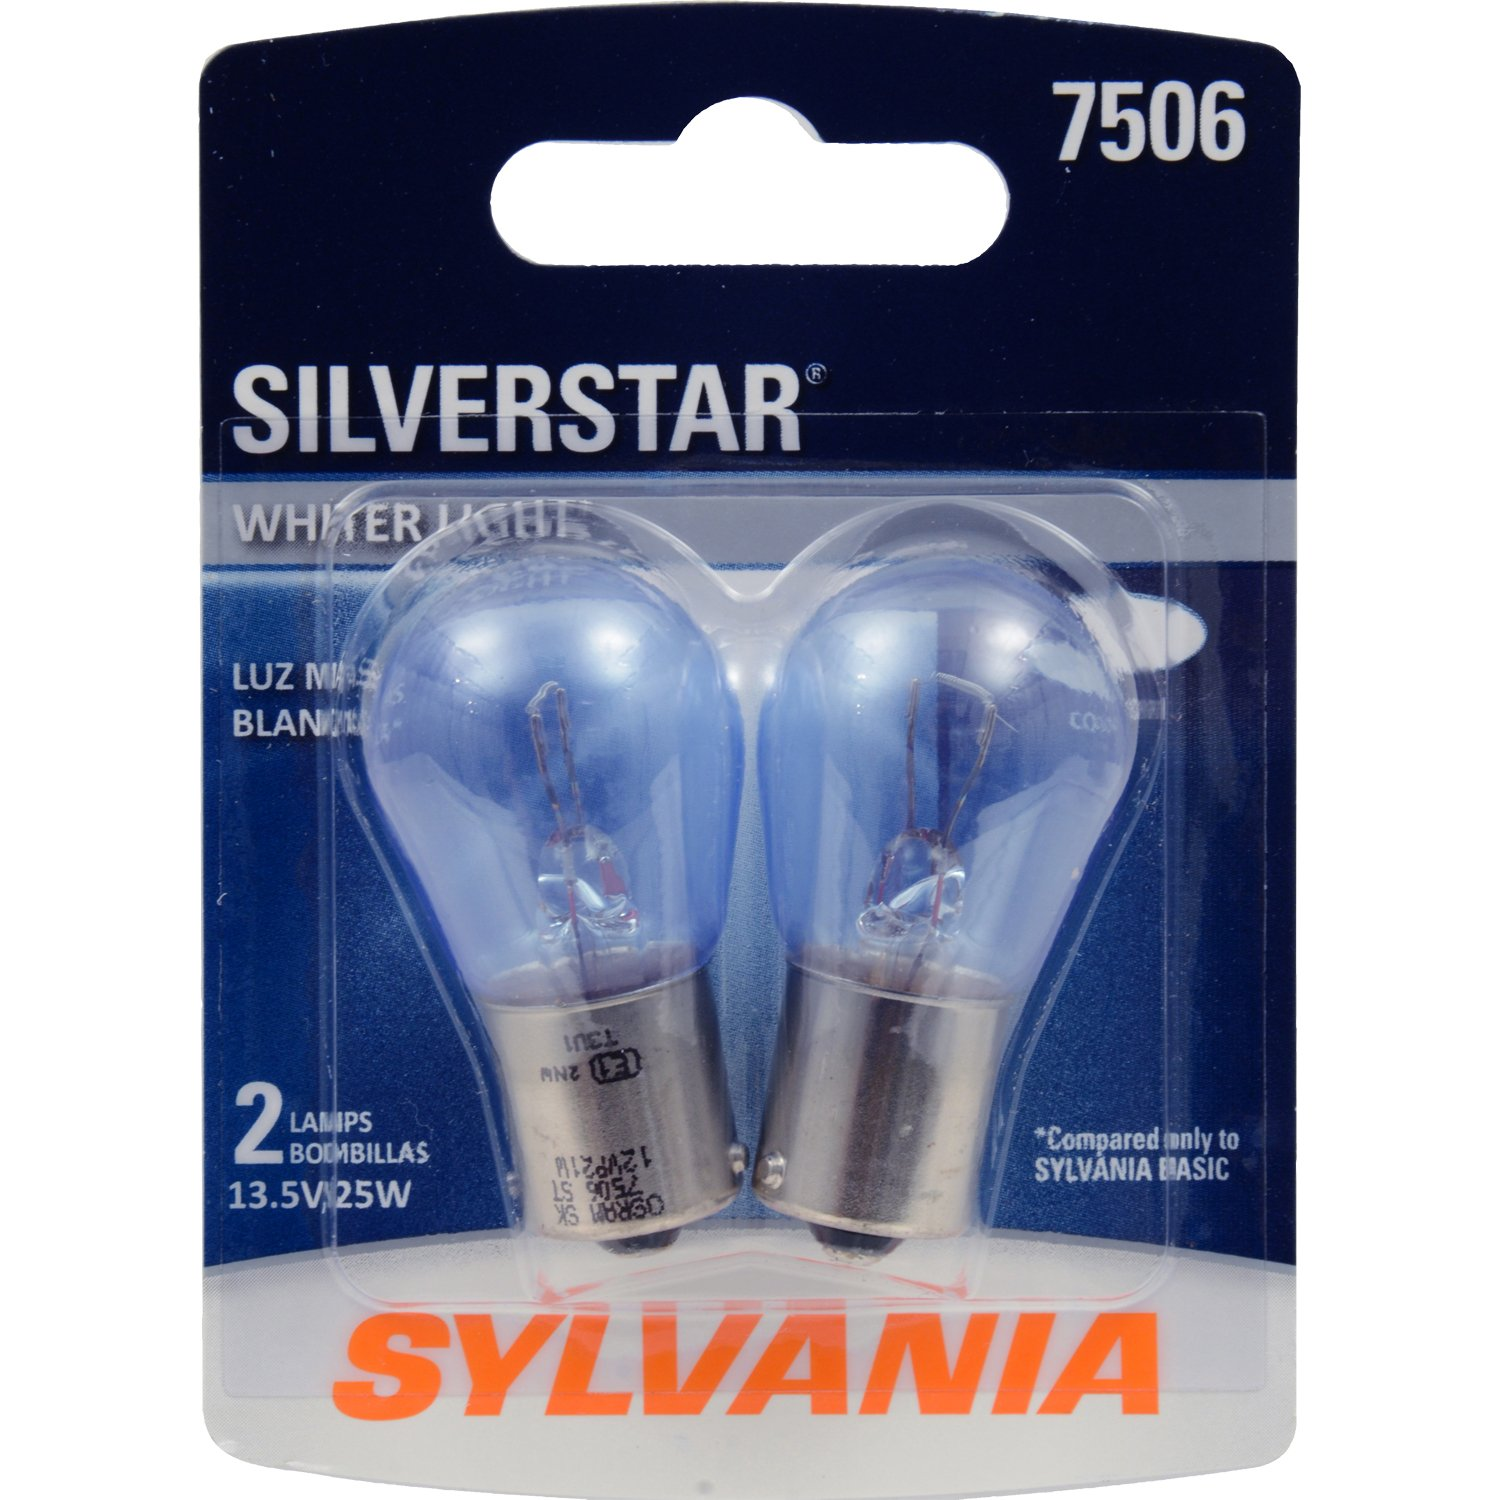 SYLVANIA - 7506 SilverStar Mini Bulb - Brighter and Whiter Light, Ideal for Daytime Running Lights (DRL) and Back-Up/Reverse Lights (Contains 2 Bulbs)